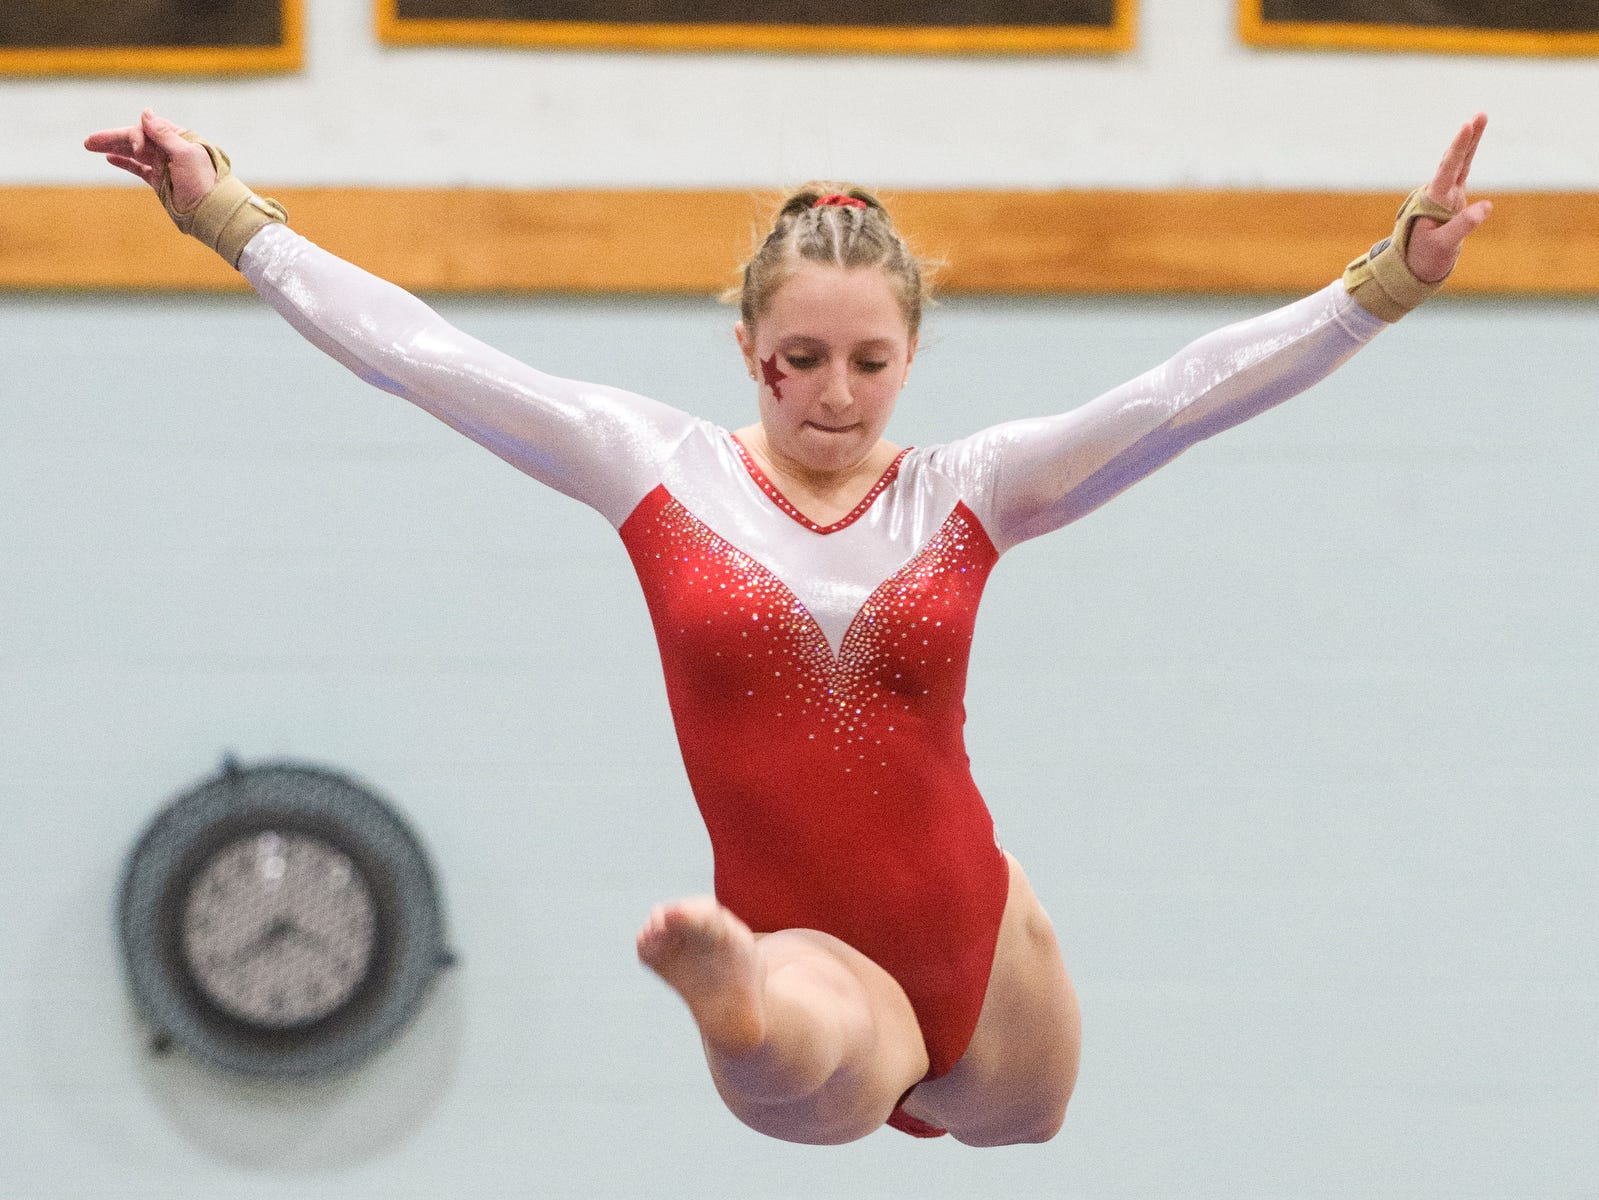 CVU's Laurynn Bombardier compels in the bar during the 2019 high school gymnastics championship at Essex High School on Saturday afternoon February 16, 2019 in Essex, Vermont.